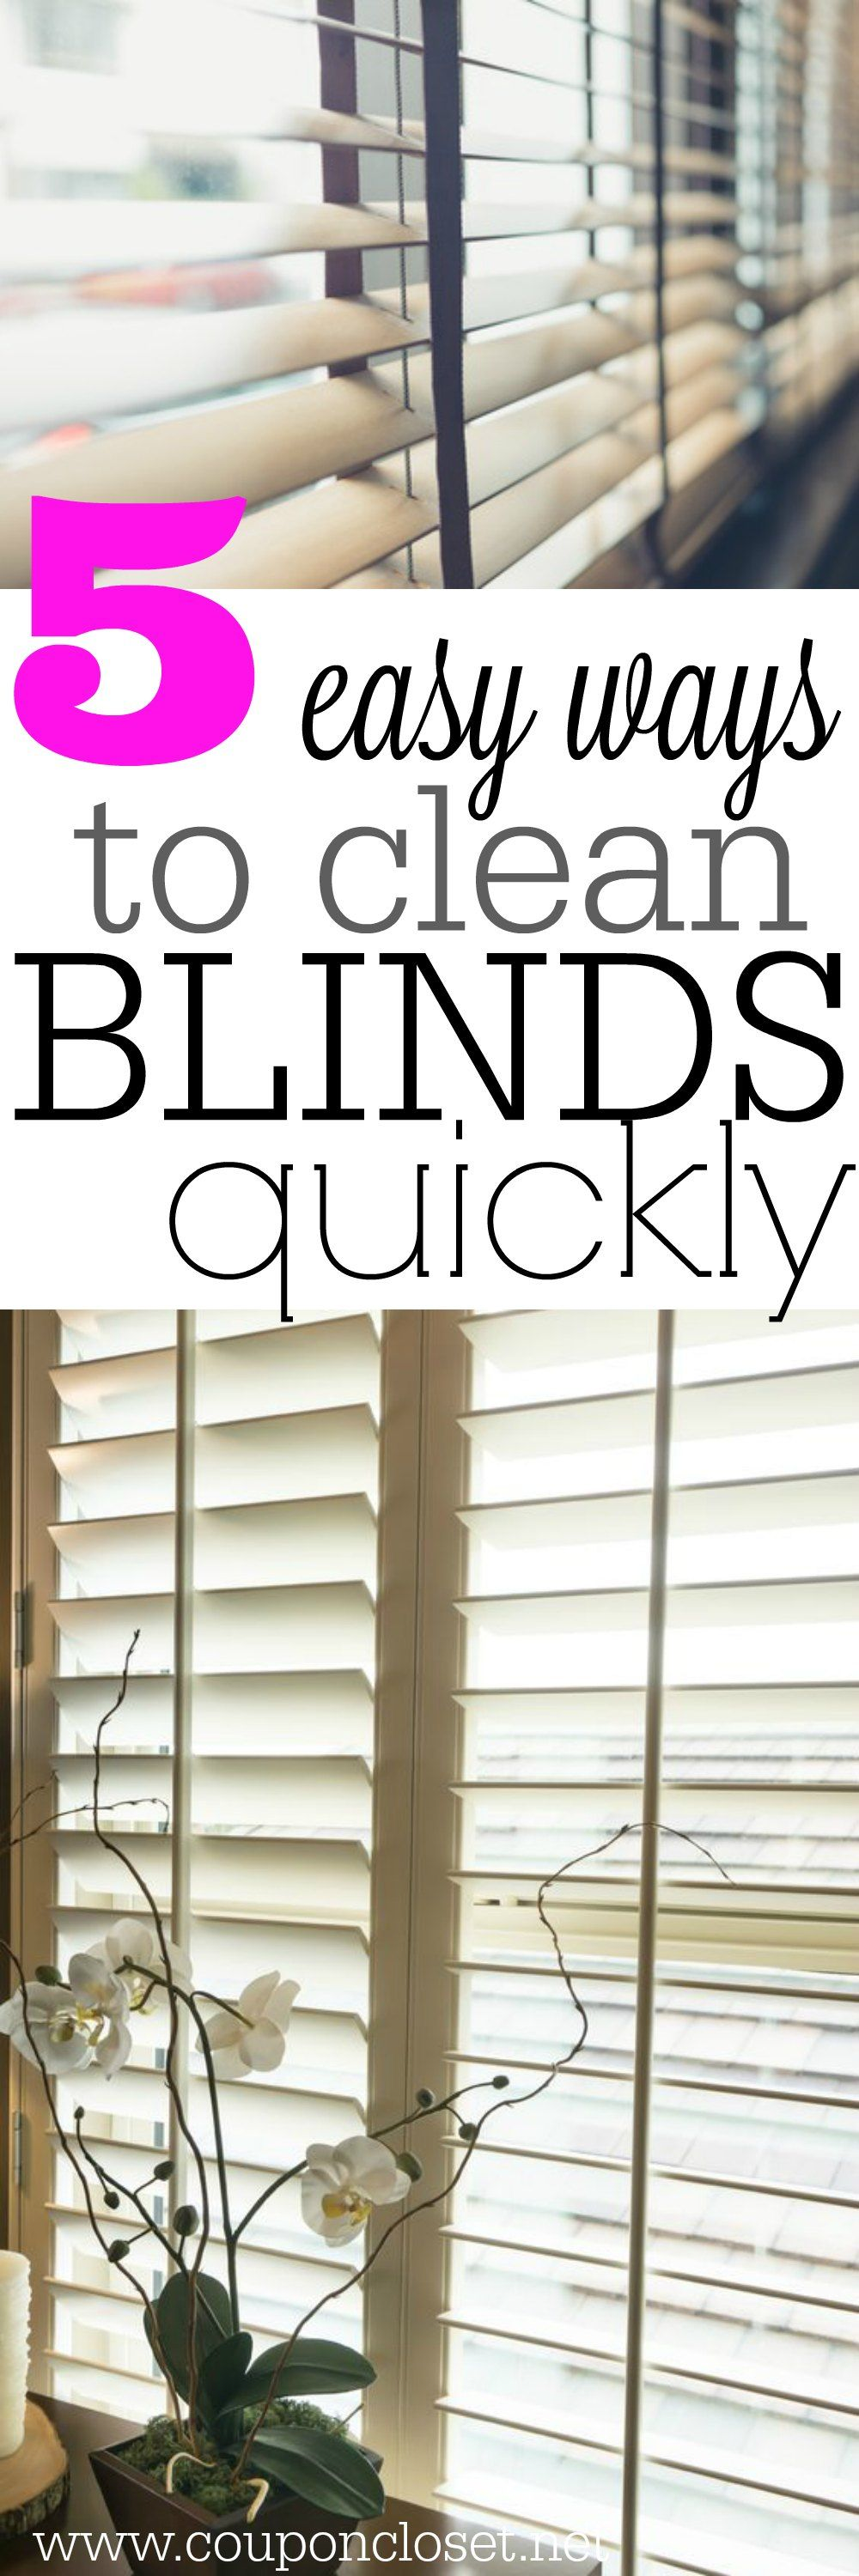 18++ Blind cleaning near me information